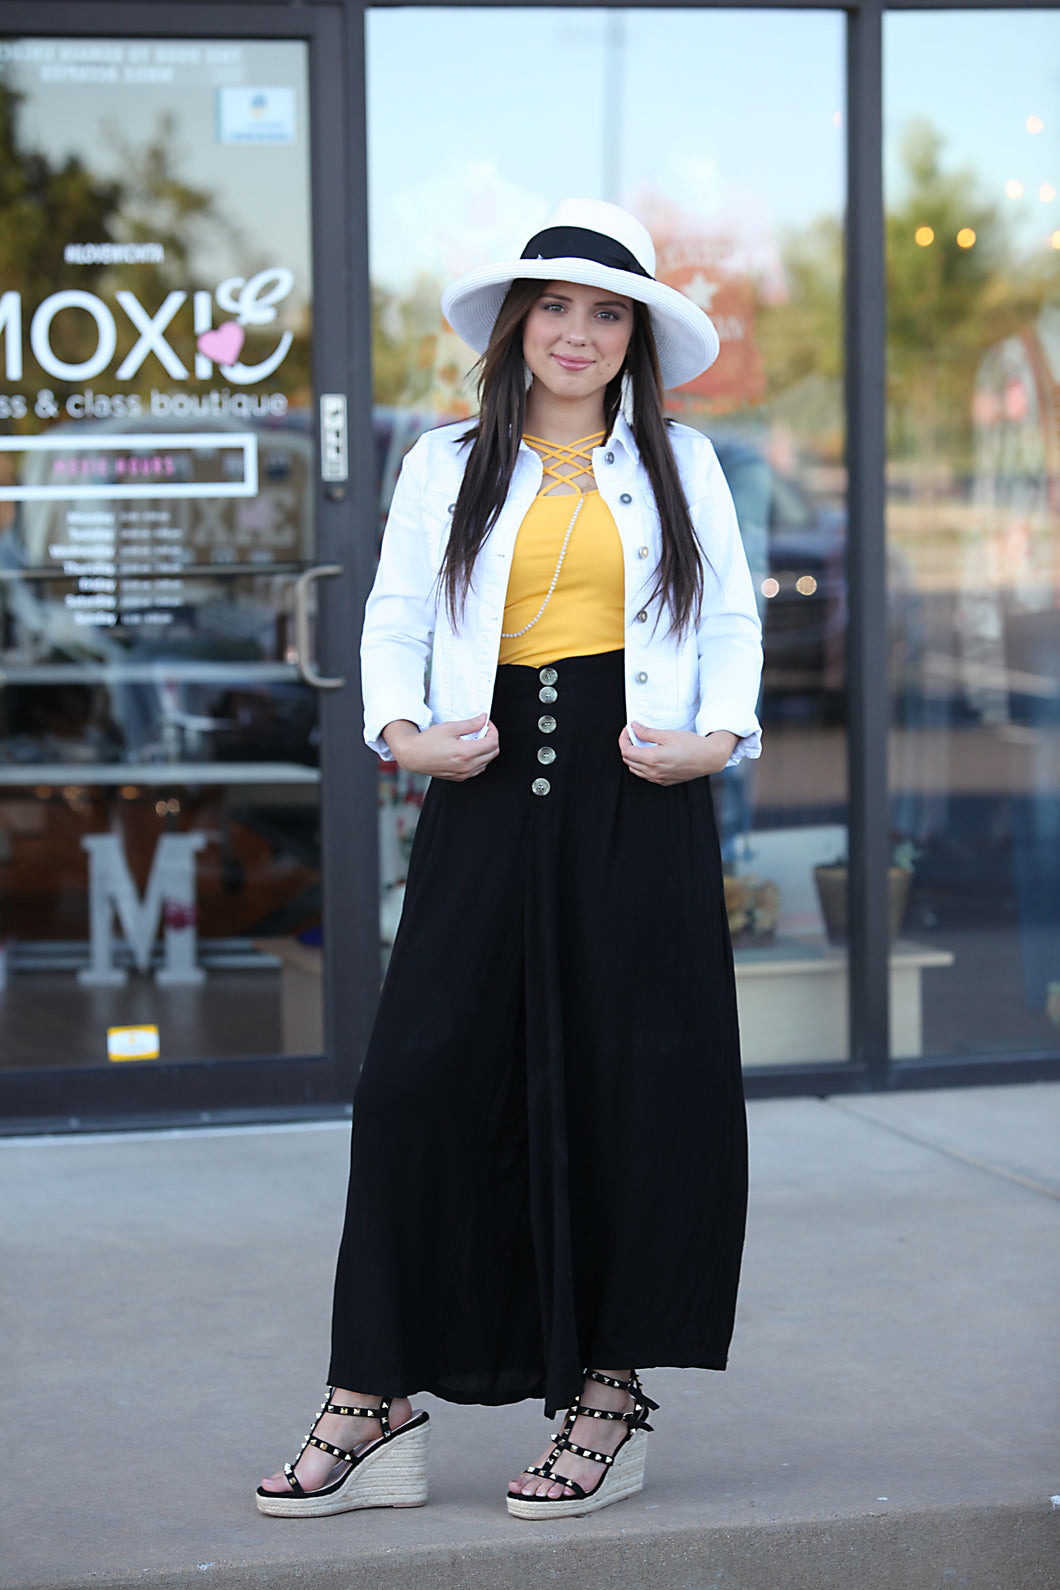 Nancy Wide Leg Pants - Moxie a sass + class boutique | Wichita, KS